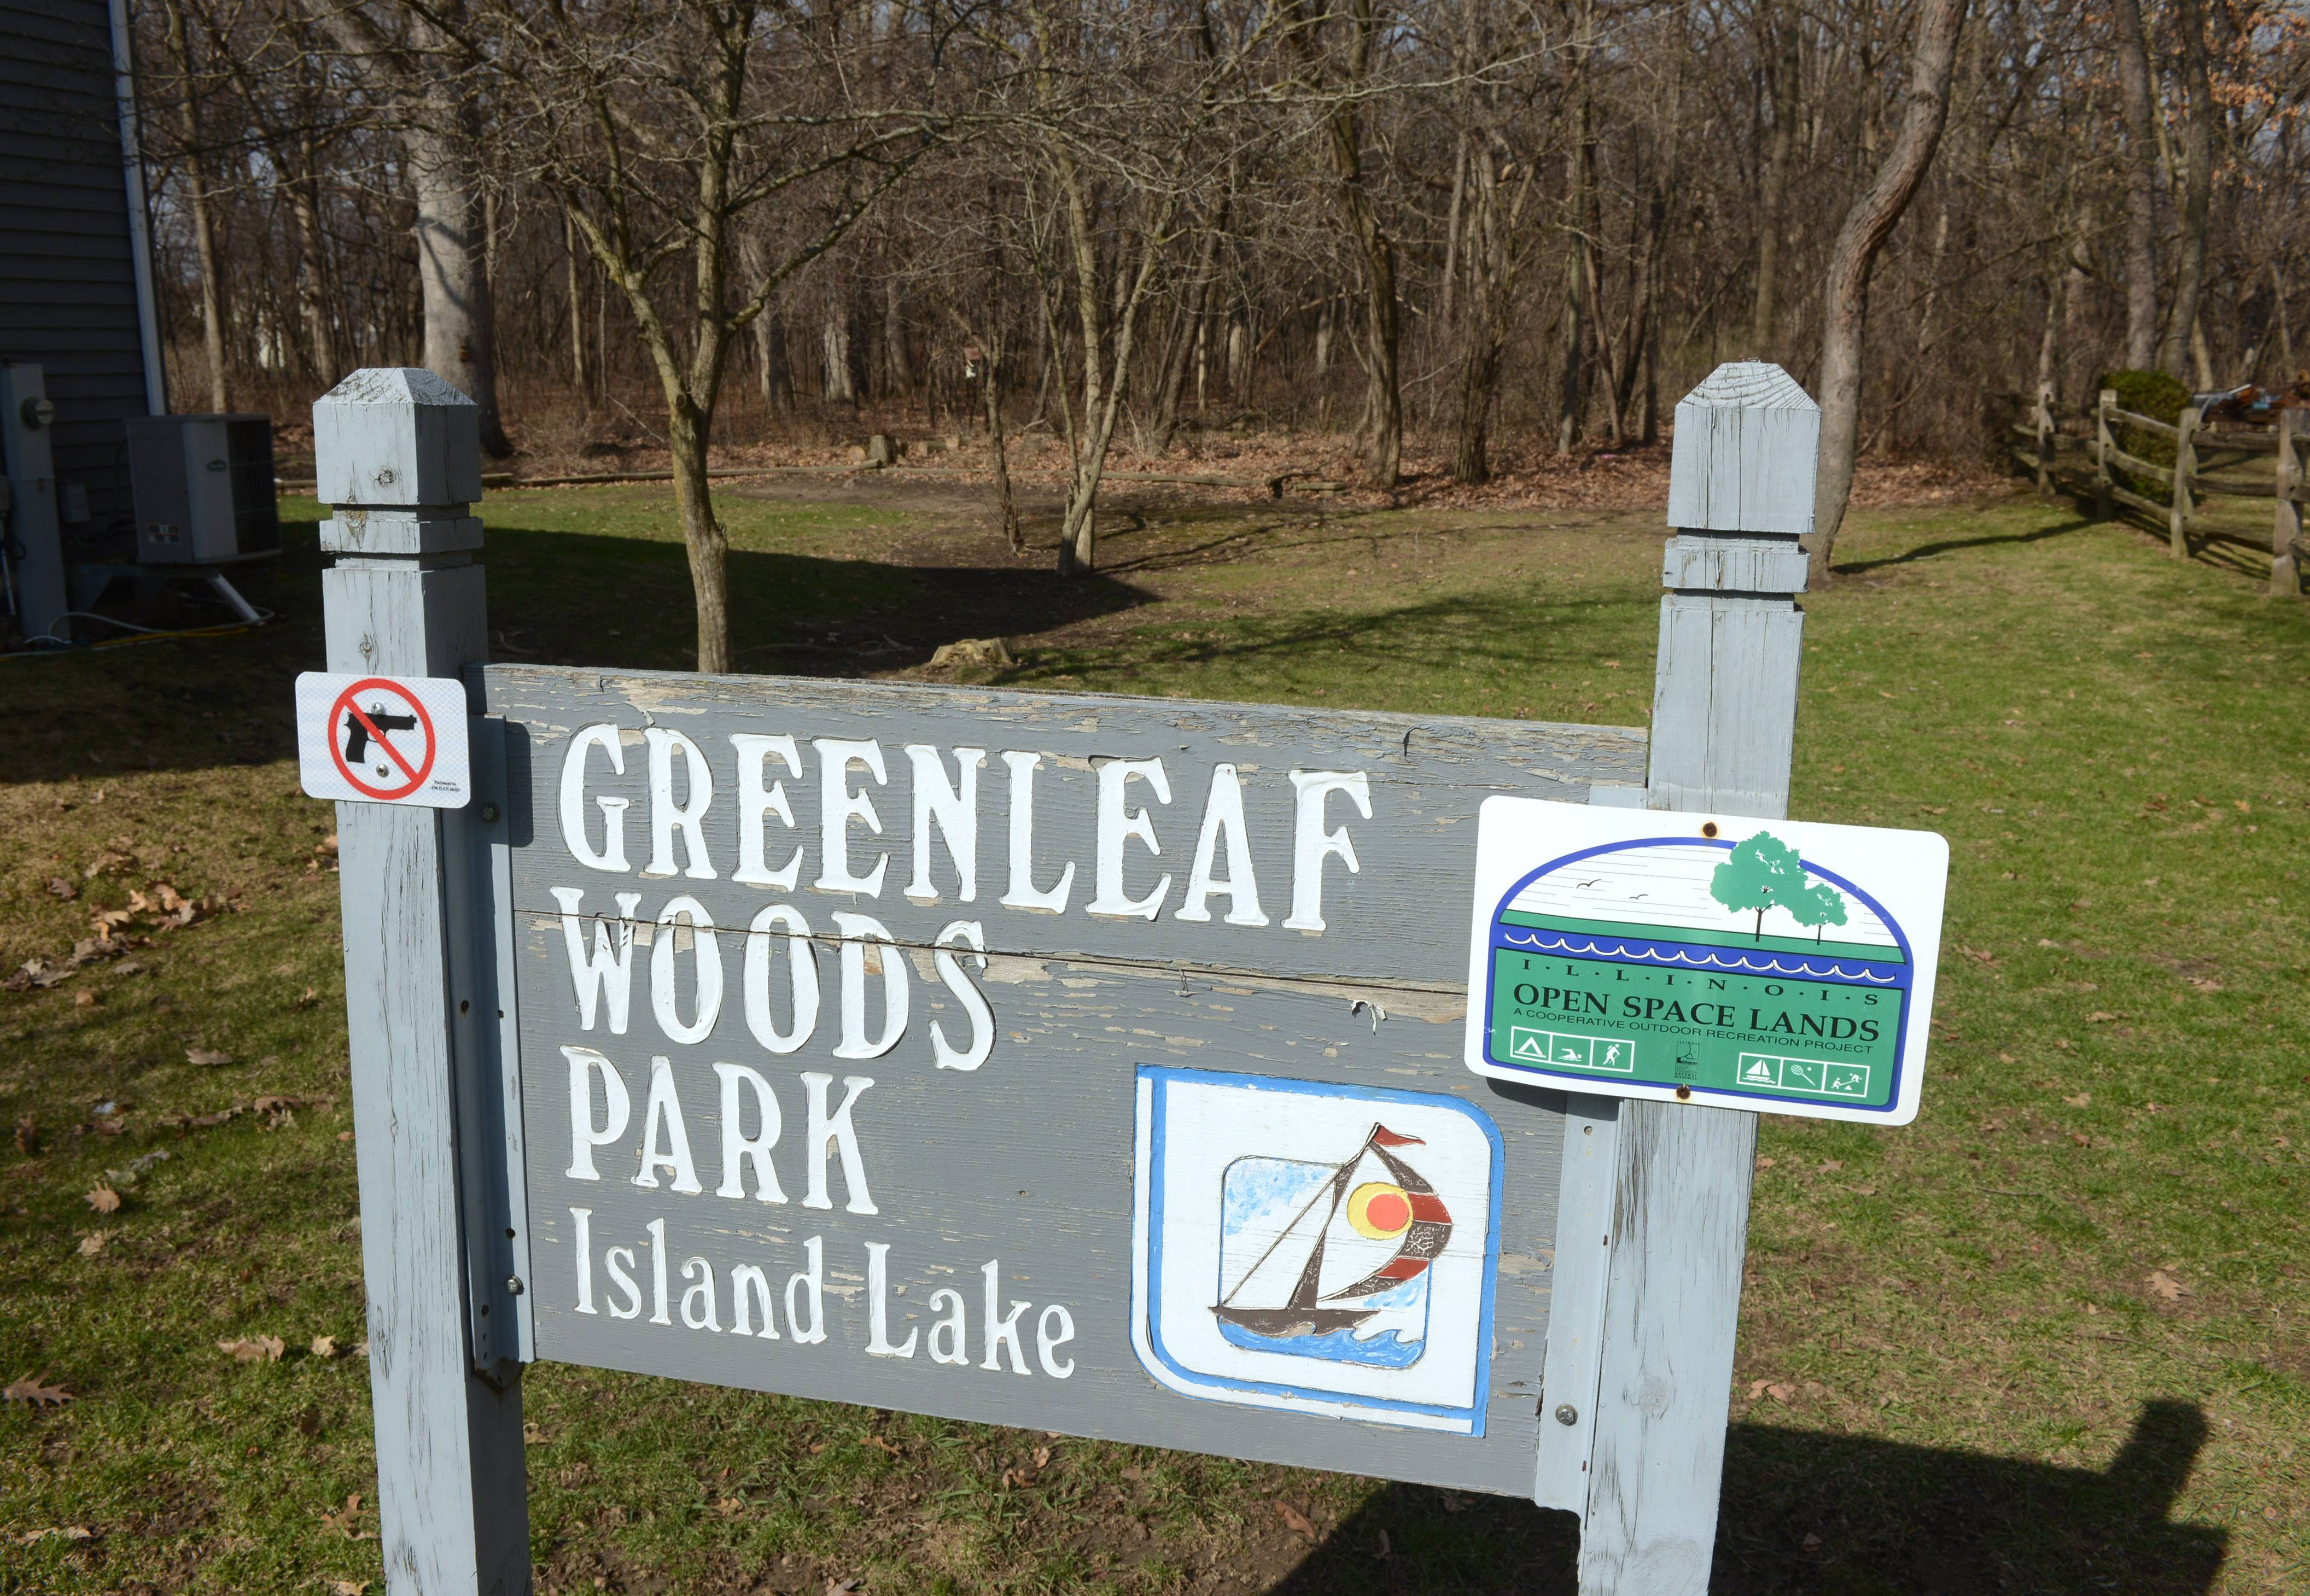 Island Lake won't have to return $239,000 state grant for park, according to settlement